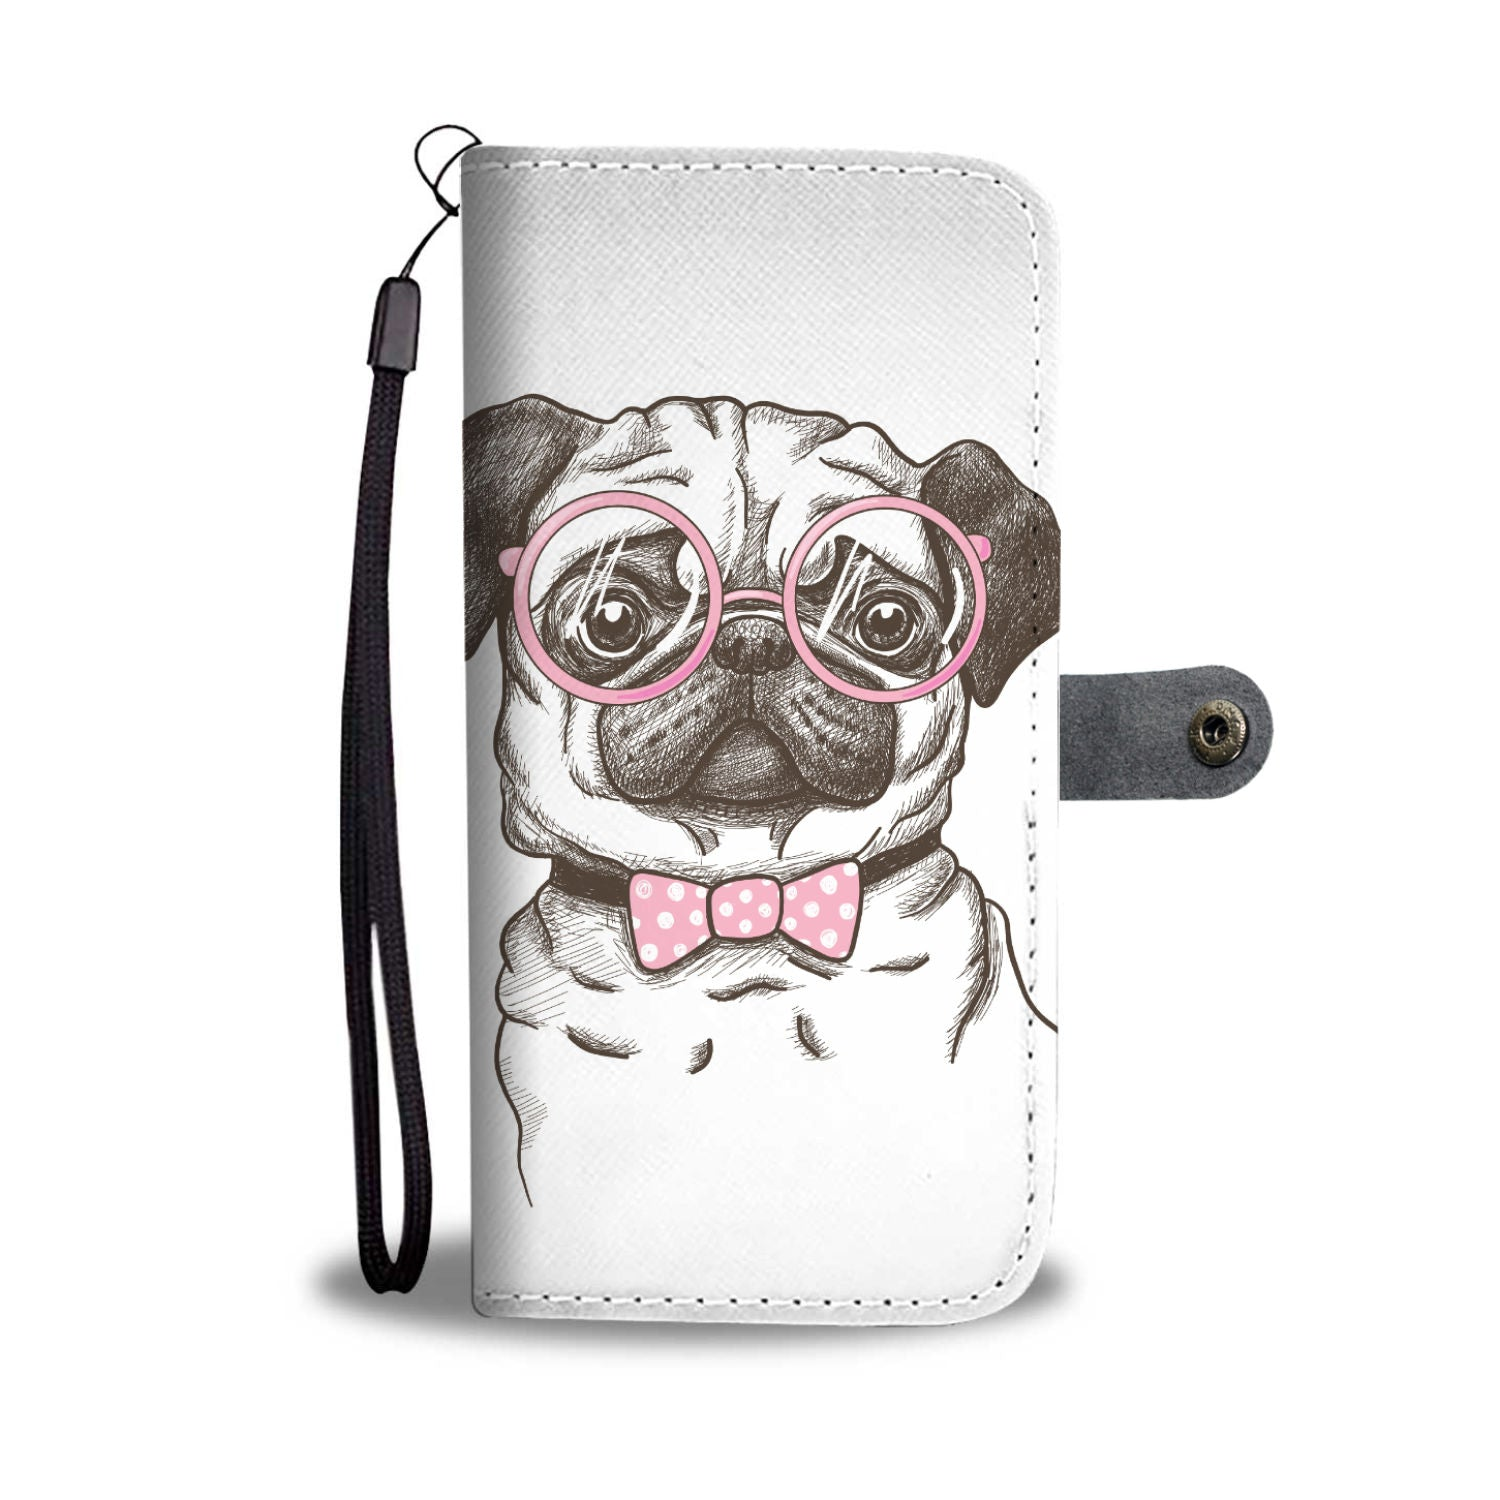 Pug With Glasses Wallet Phone Case - pug bestseller